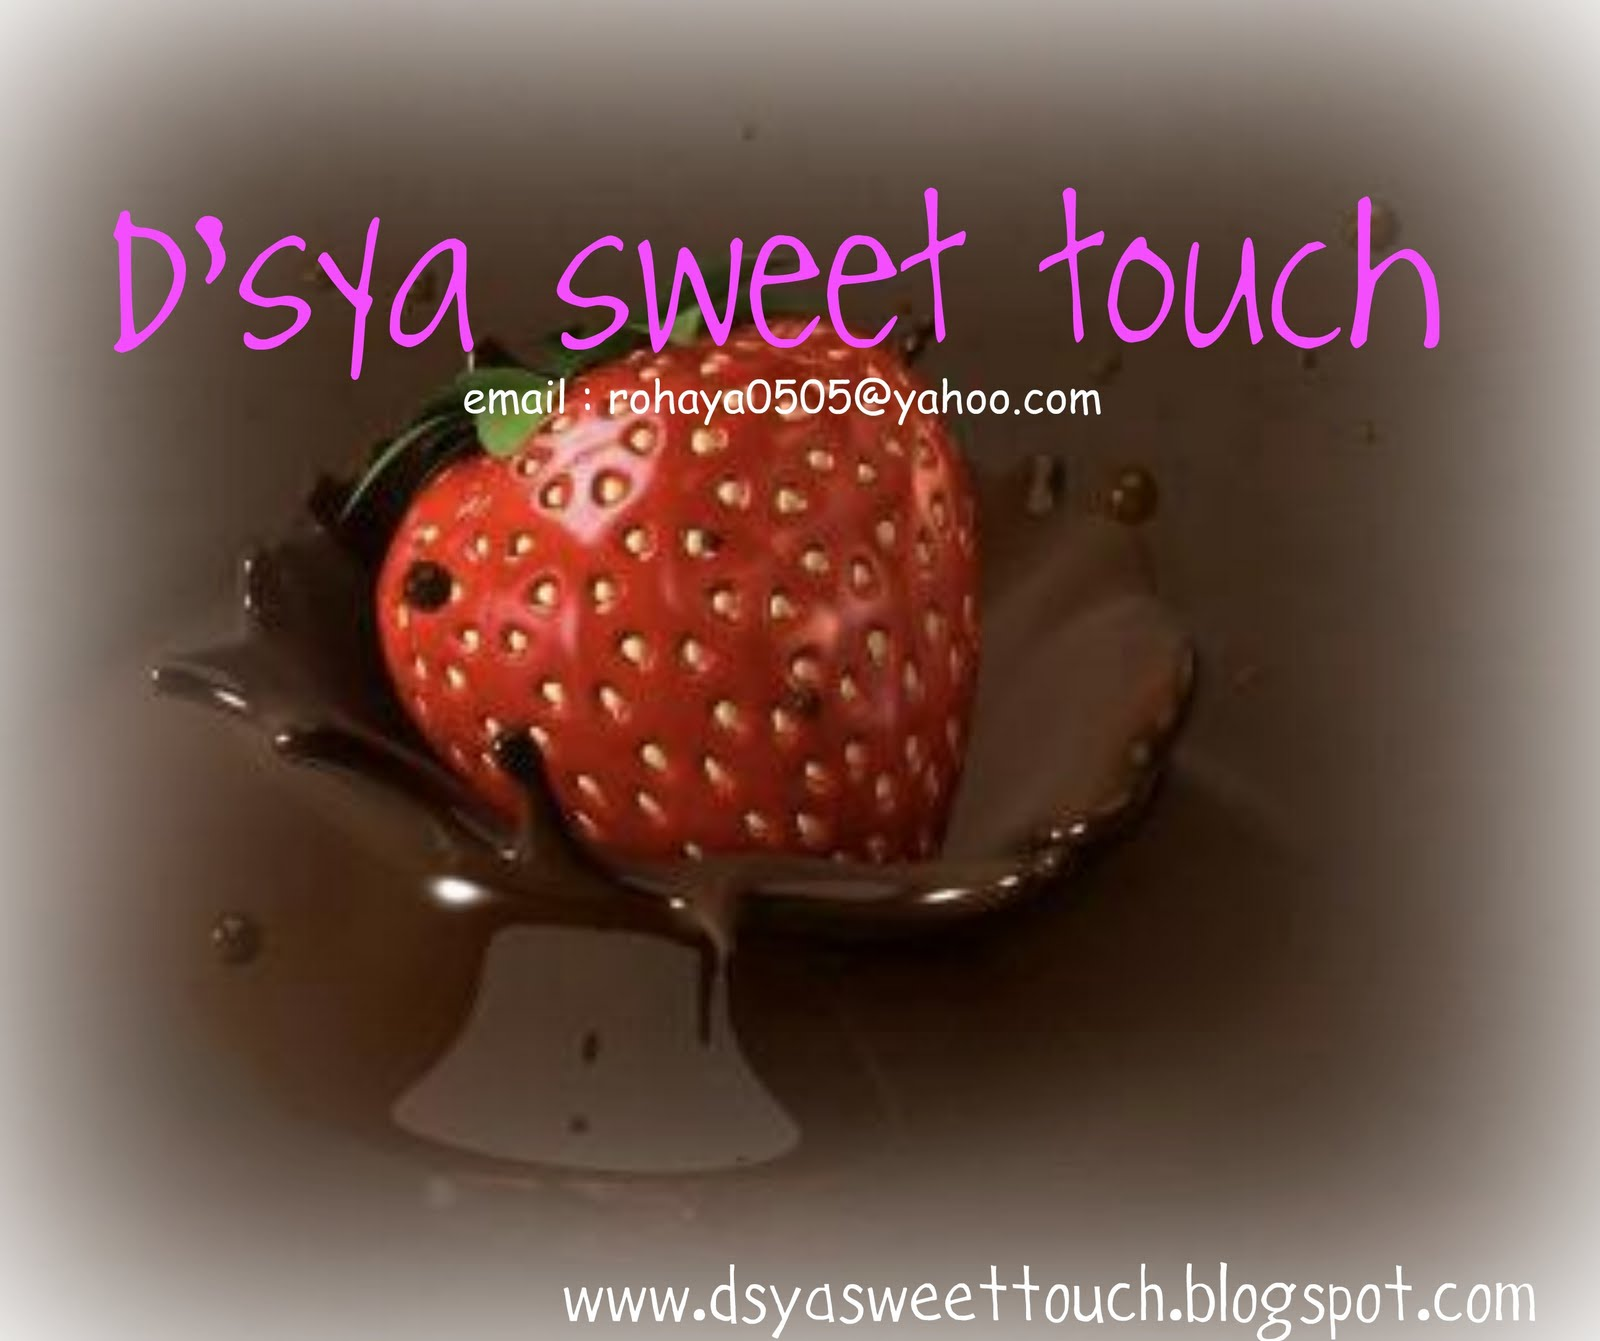 D'Sya Sweet Touch